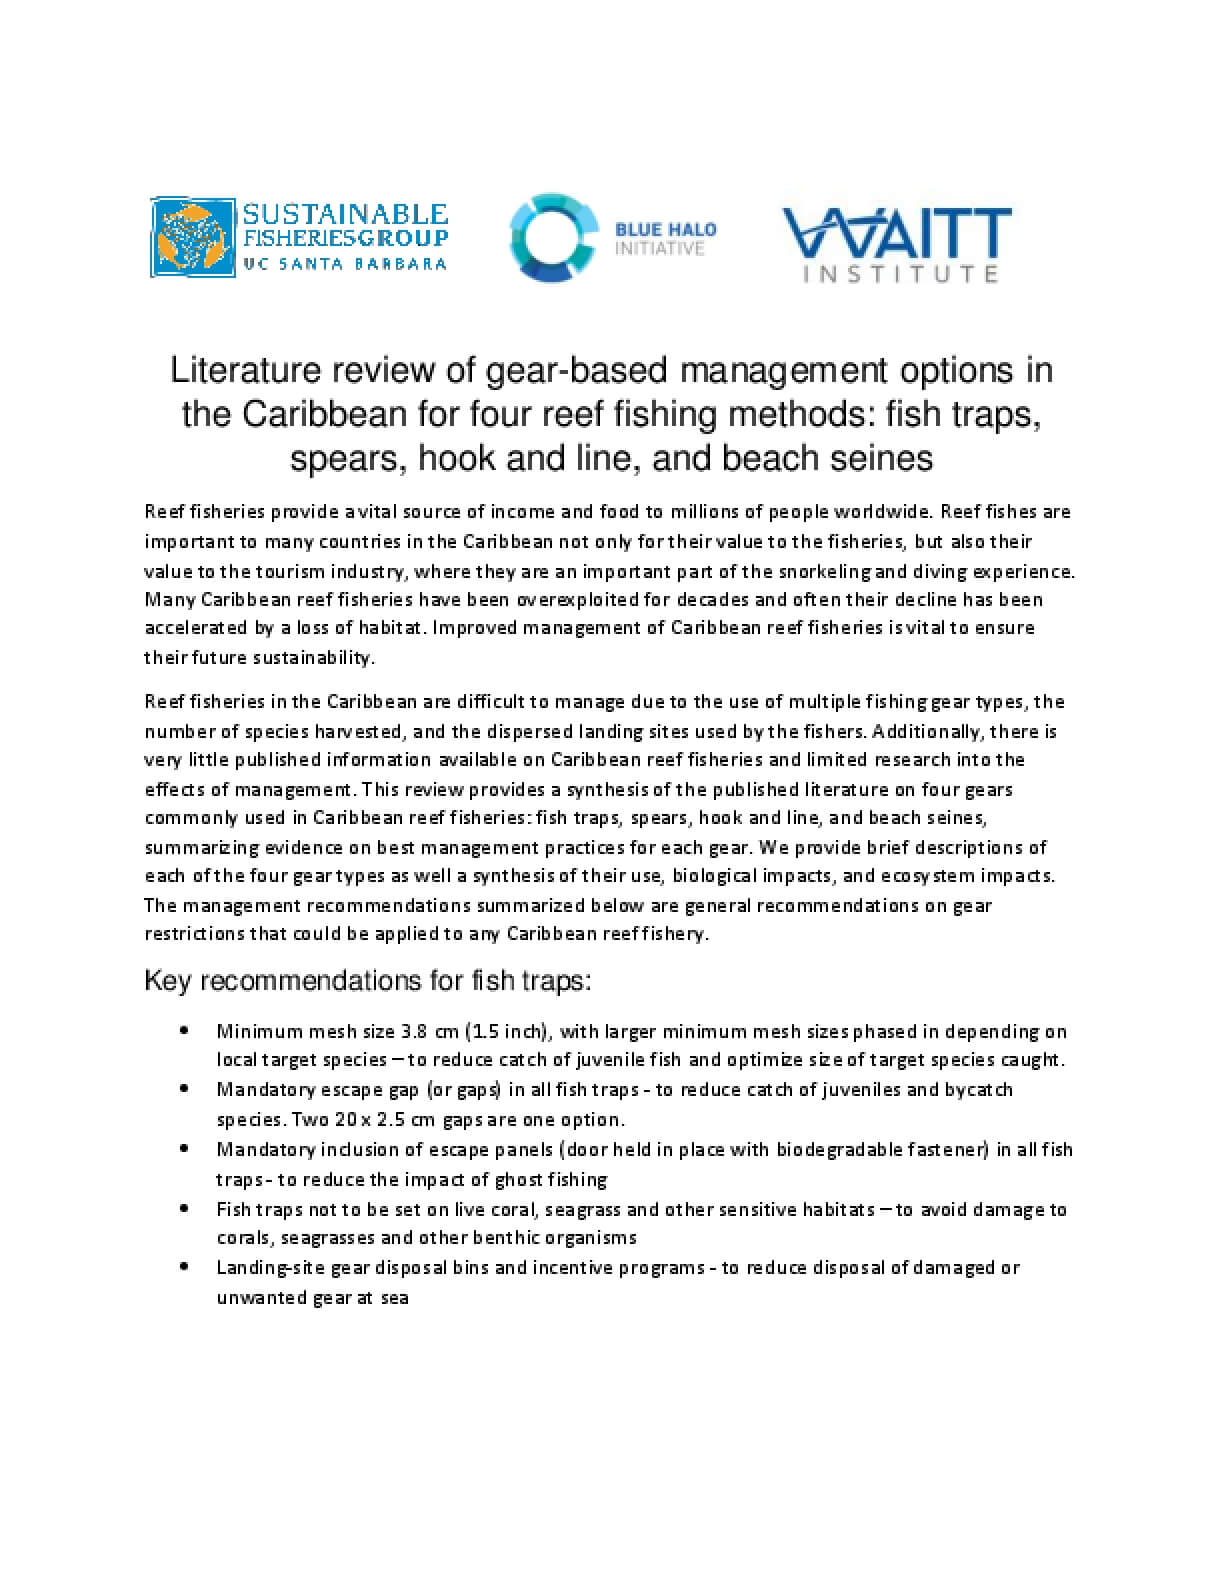 Literature Review of Gear-based Management Options in the Caribbean for Four Reef Fishing Methods: Fish Traps, Spears, Hook and Line, and Beach Seines